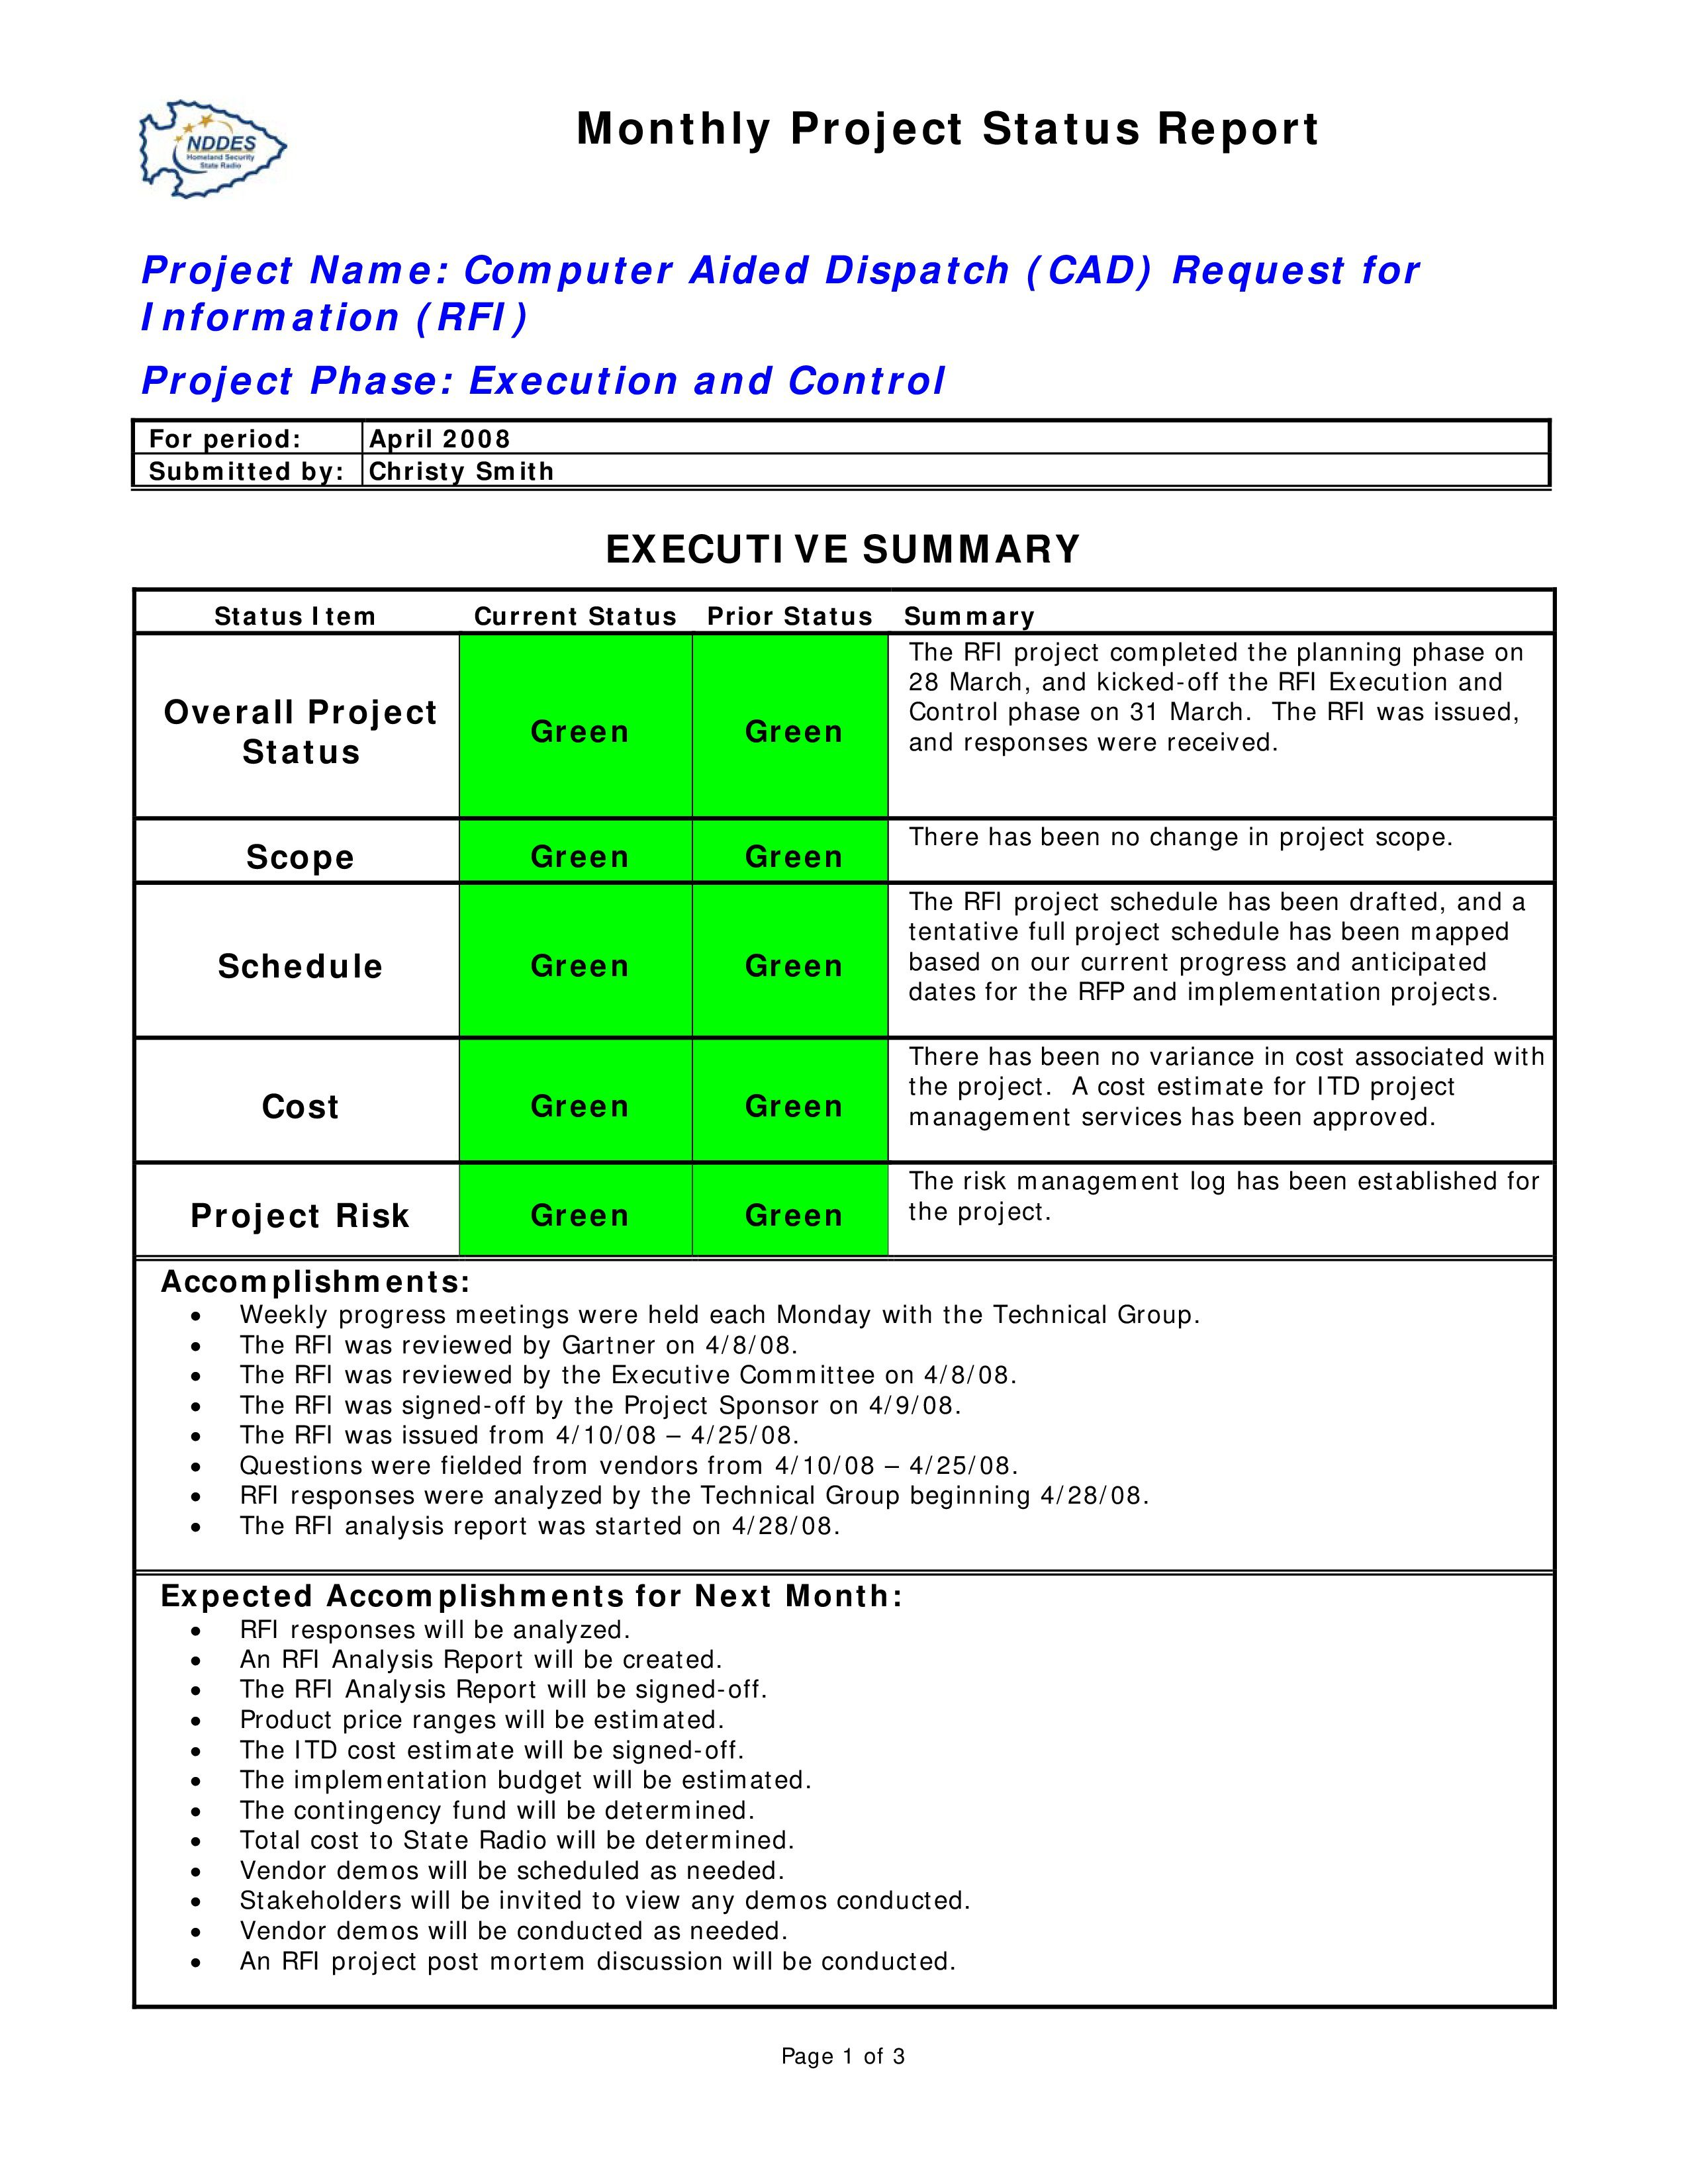 003 Wondrou Project Statu Report Template Design  Example Pdf Powerpoint MonthlyFull